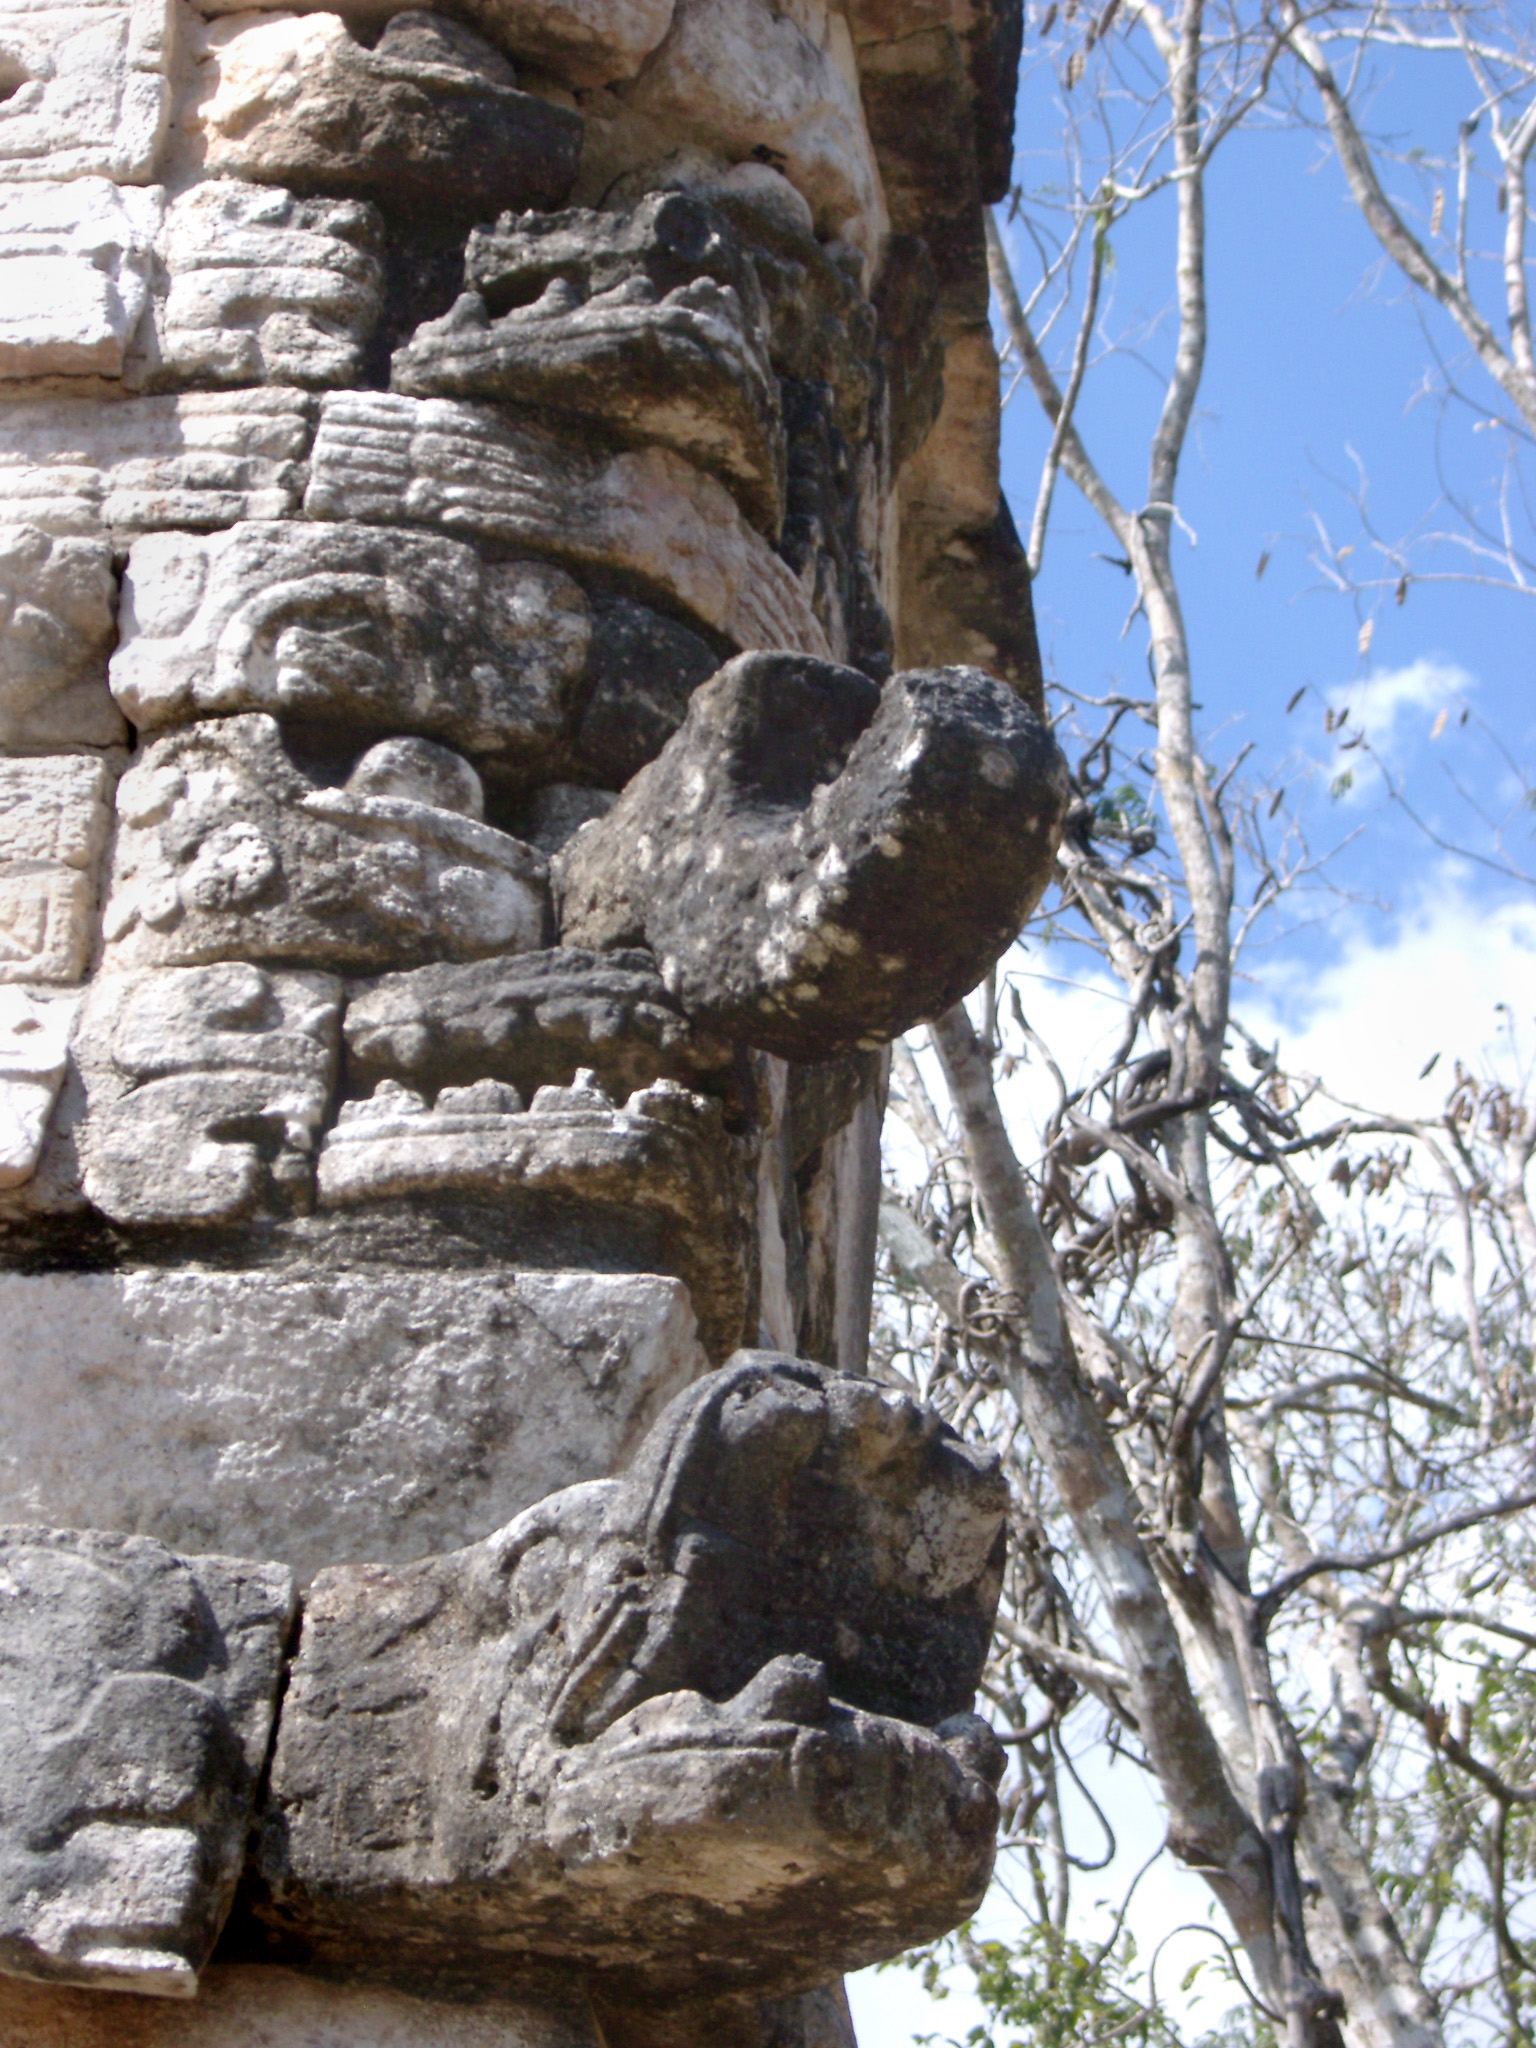 Detail of stone carvings at Chitzen Itza, an important Mayan archaeological site in the Yucatan Peninsula, Mexico